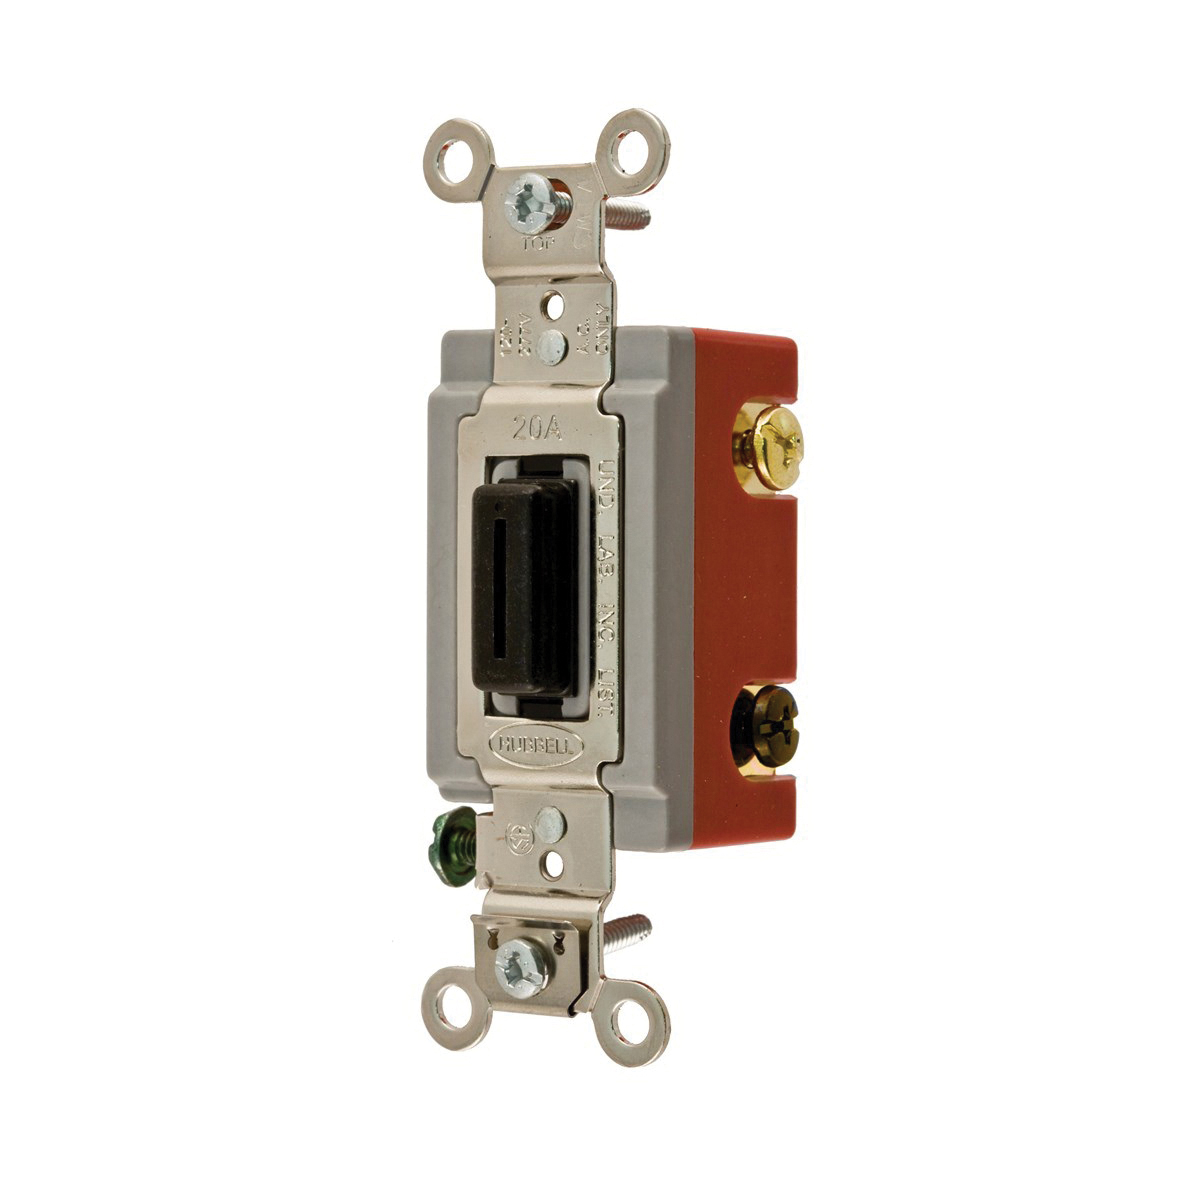 Wiring Device-Kellems HBL1223L 3-Way Extra Heavy Duty Locking Toggle ...